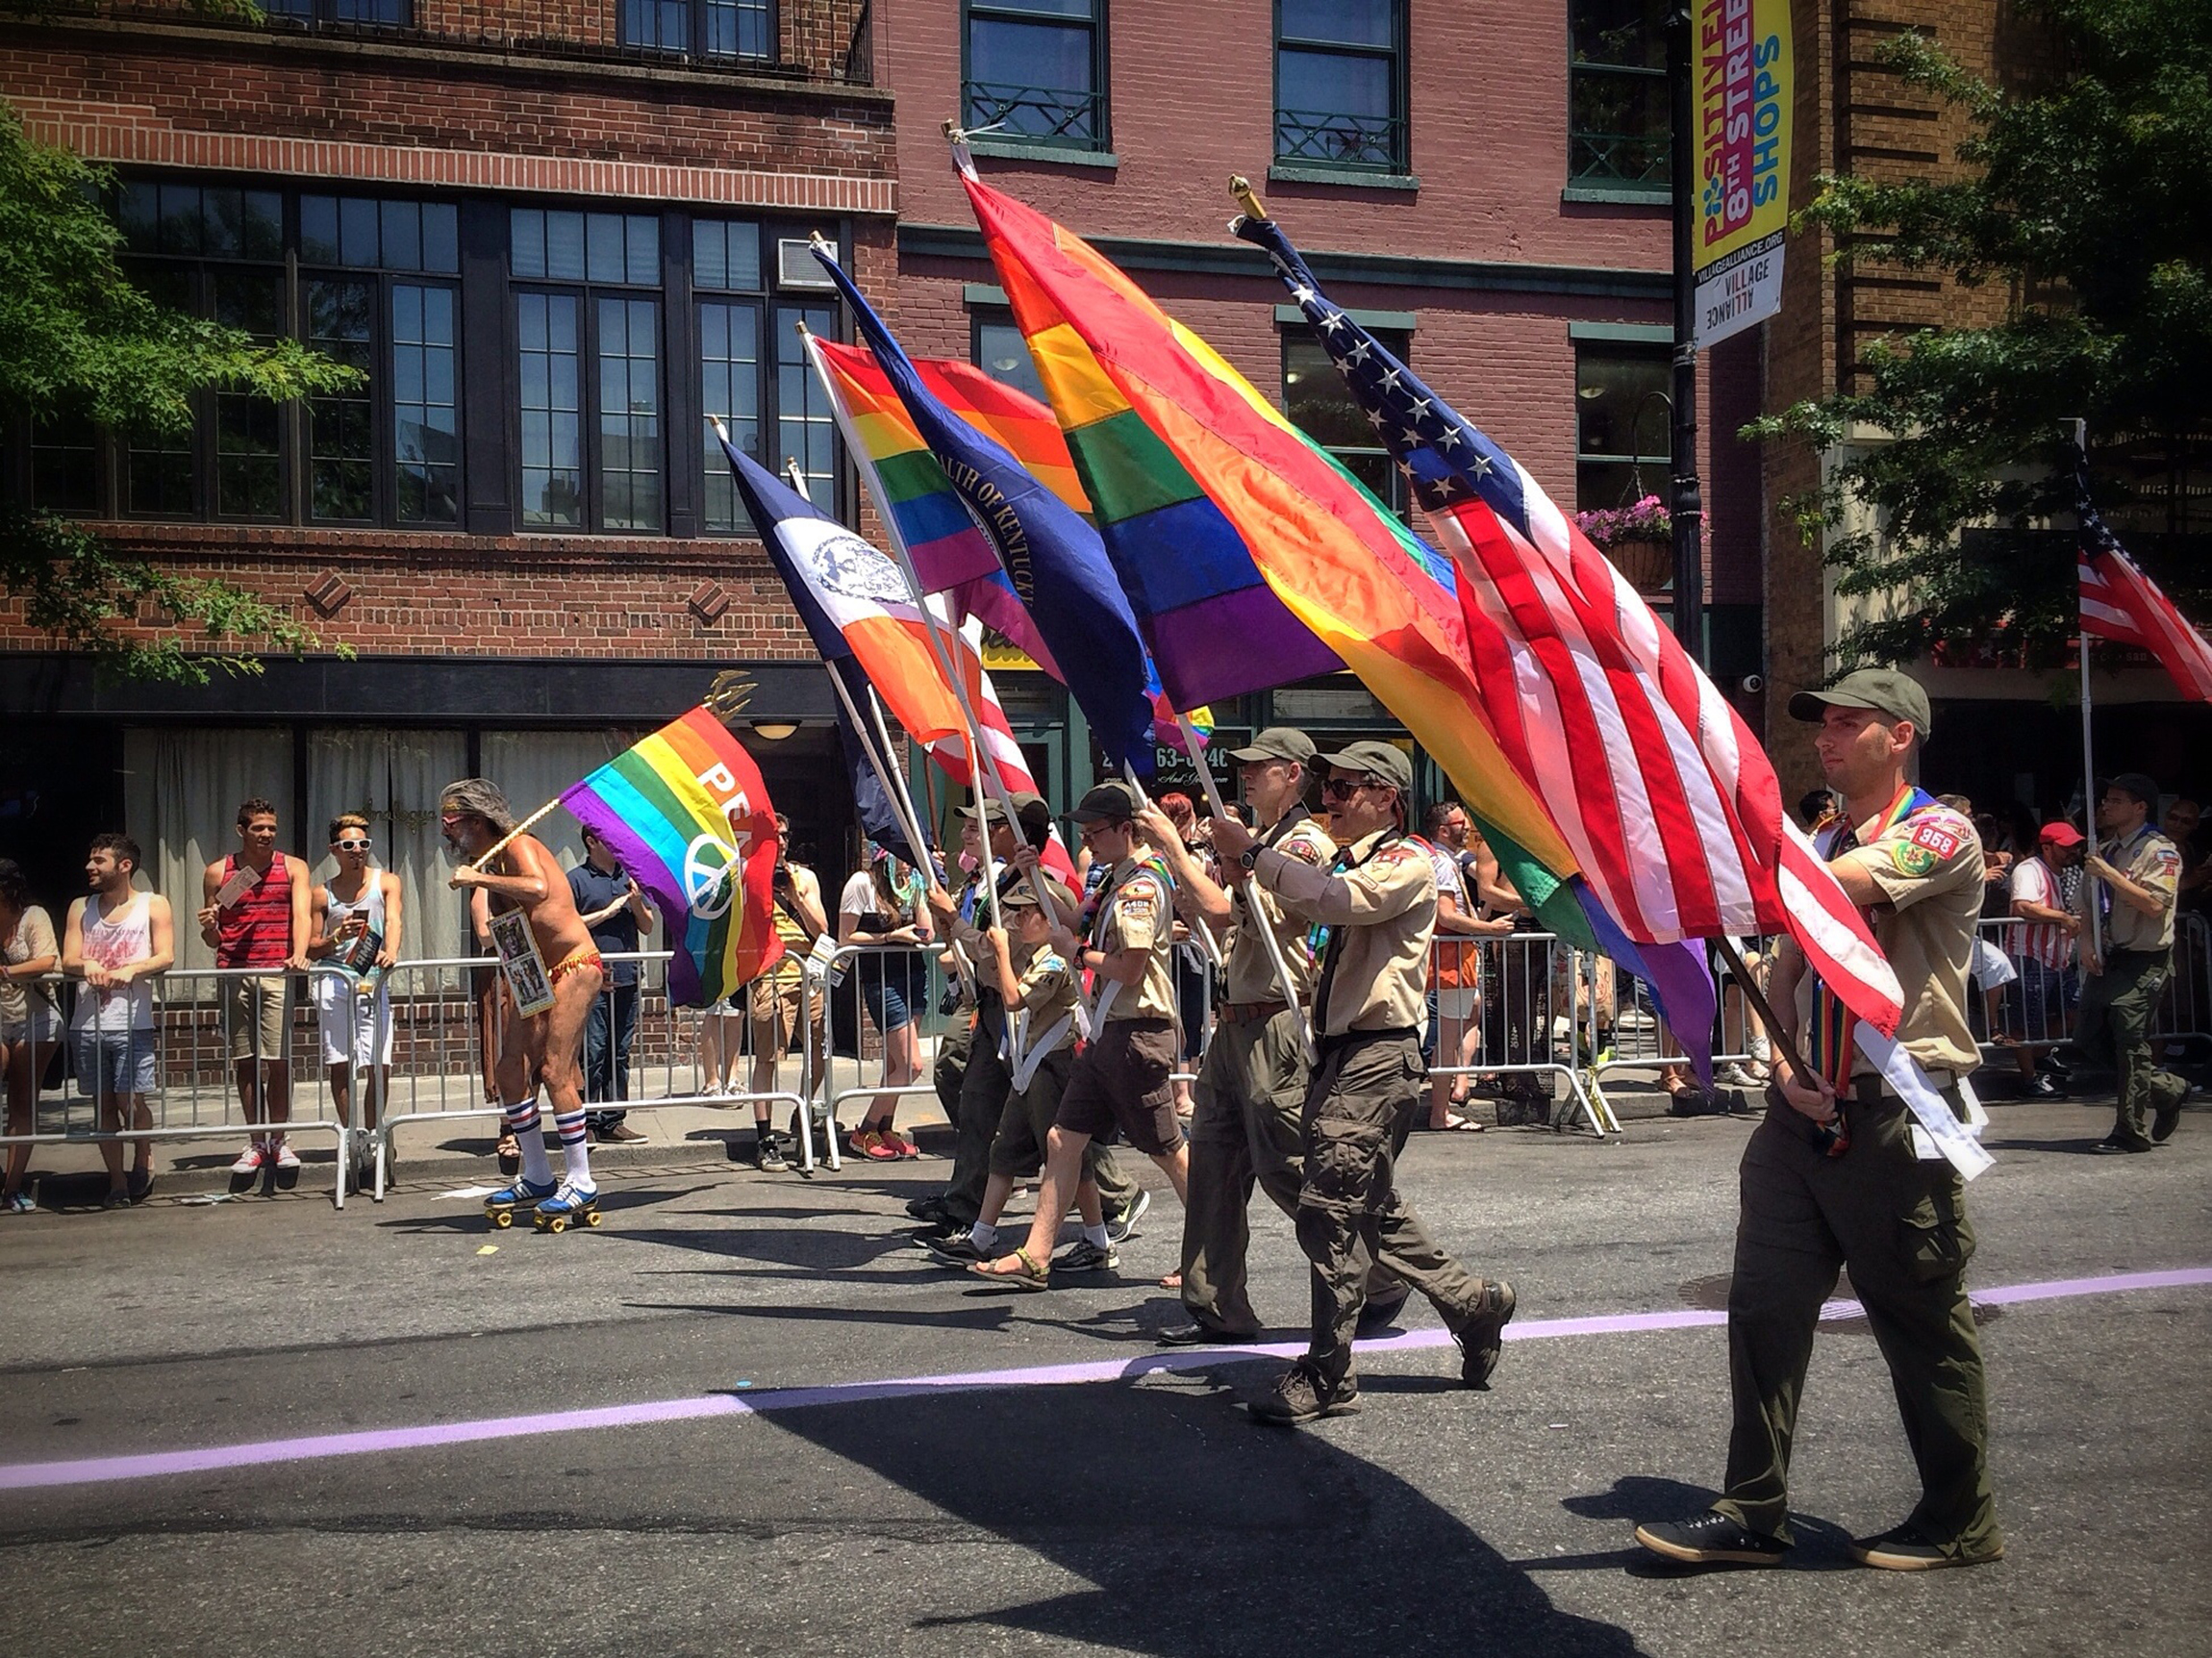 A man with a peace flag roller skates alongside the Boy Scouts of America flag bearers in the New York City Pride Parade.